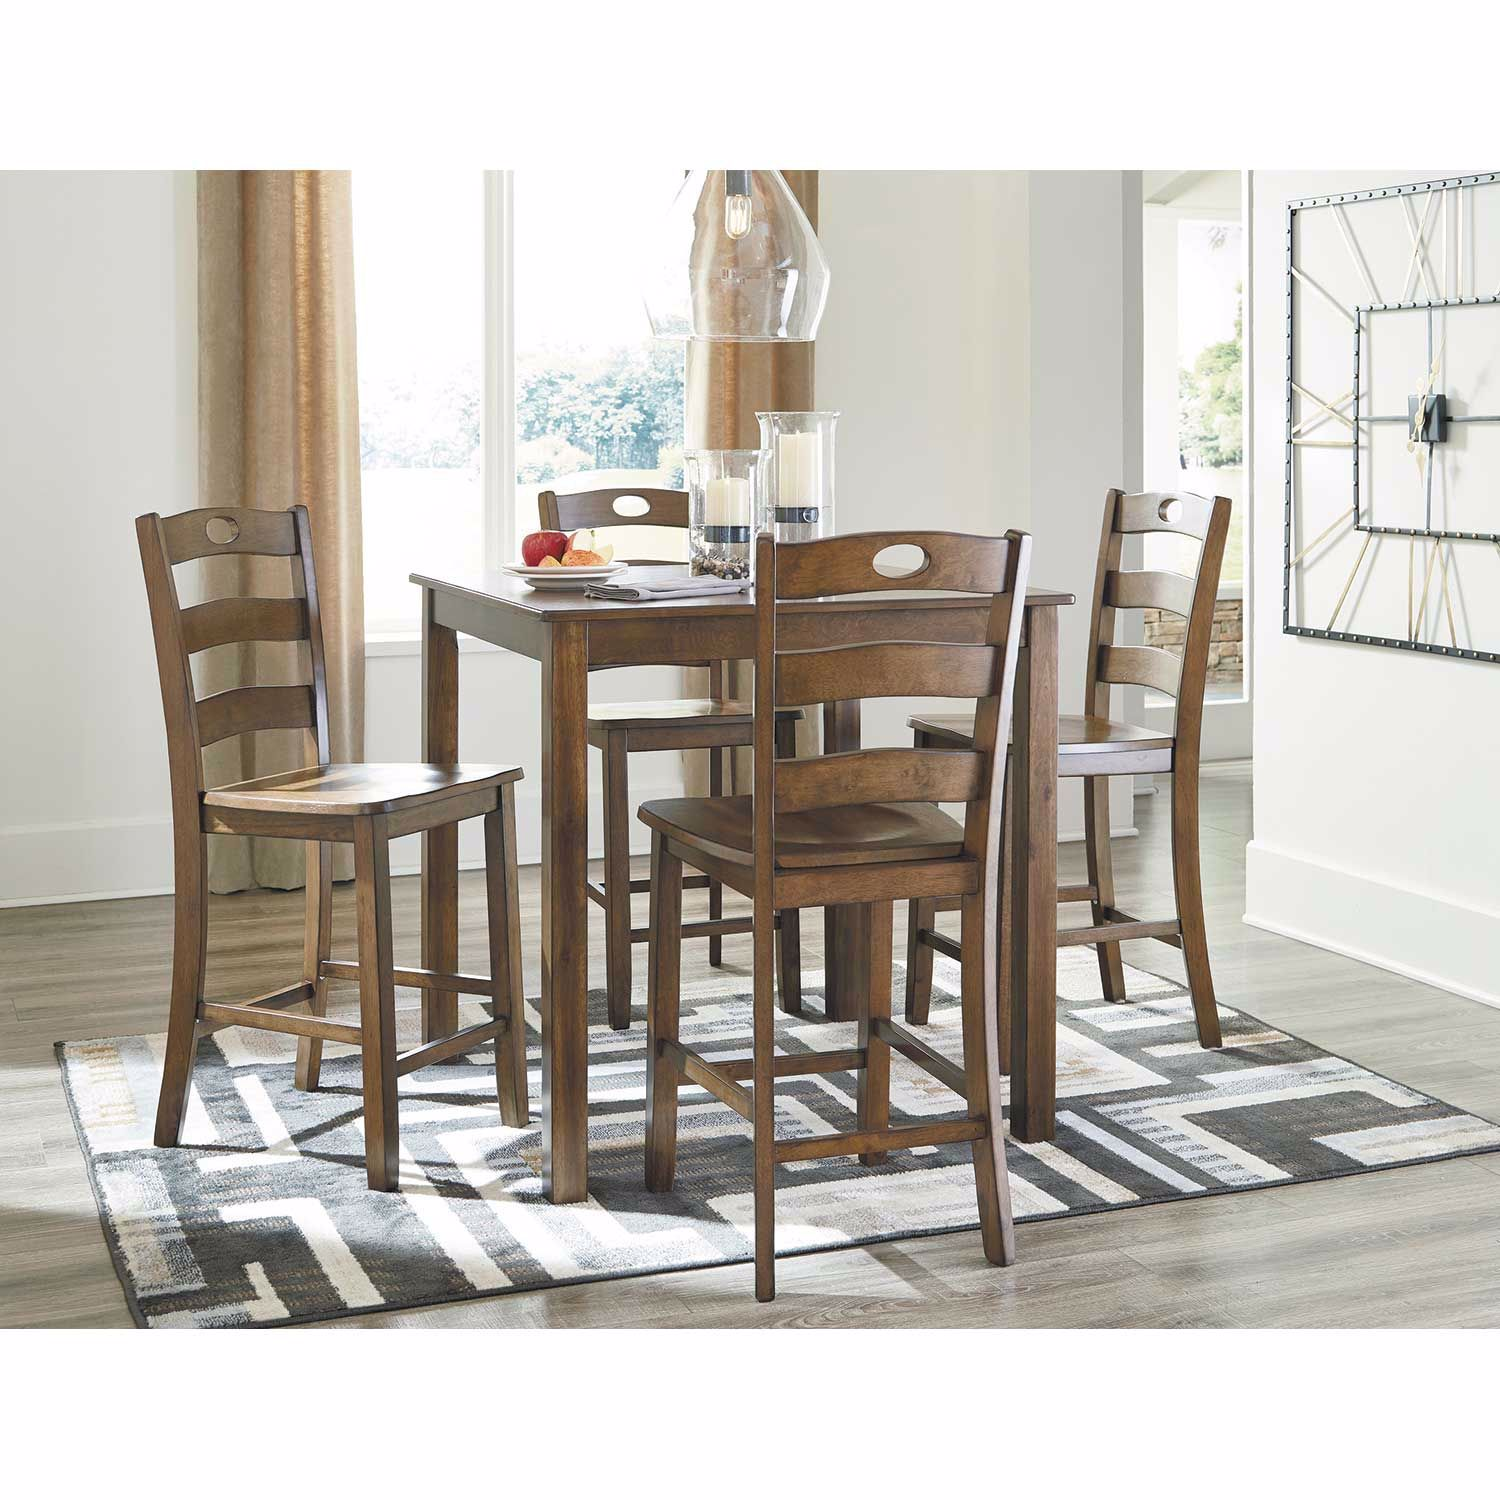 Picture of Hazelteen 5 Piece Counter Height Set